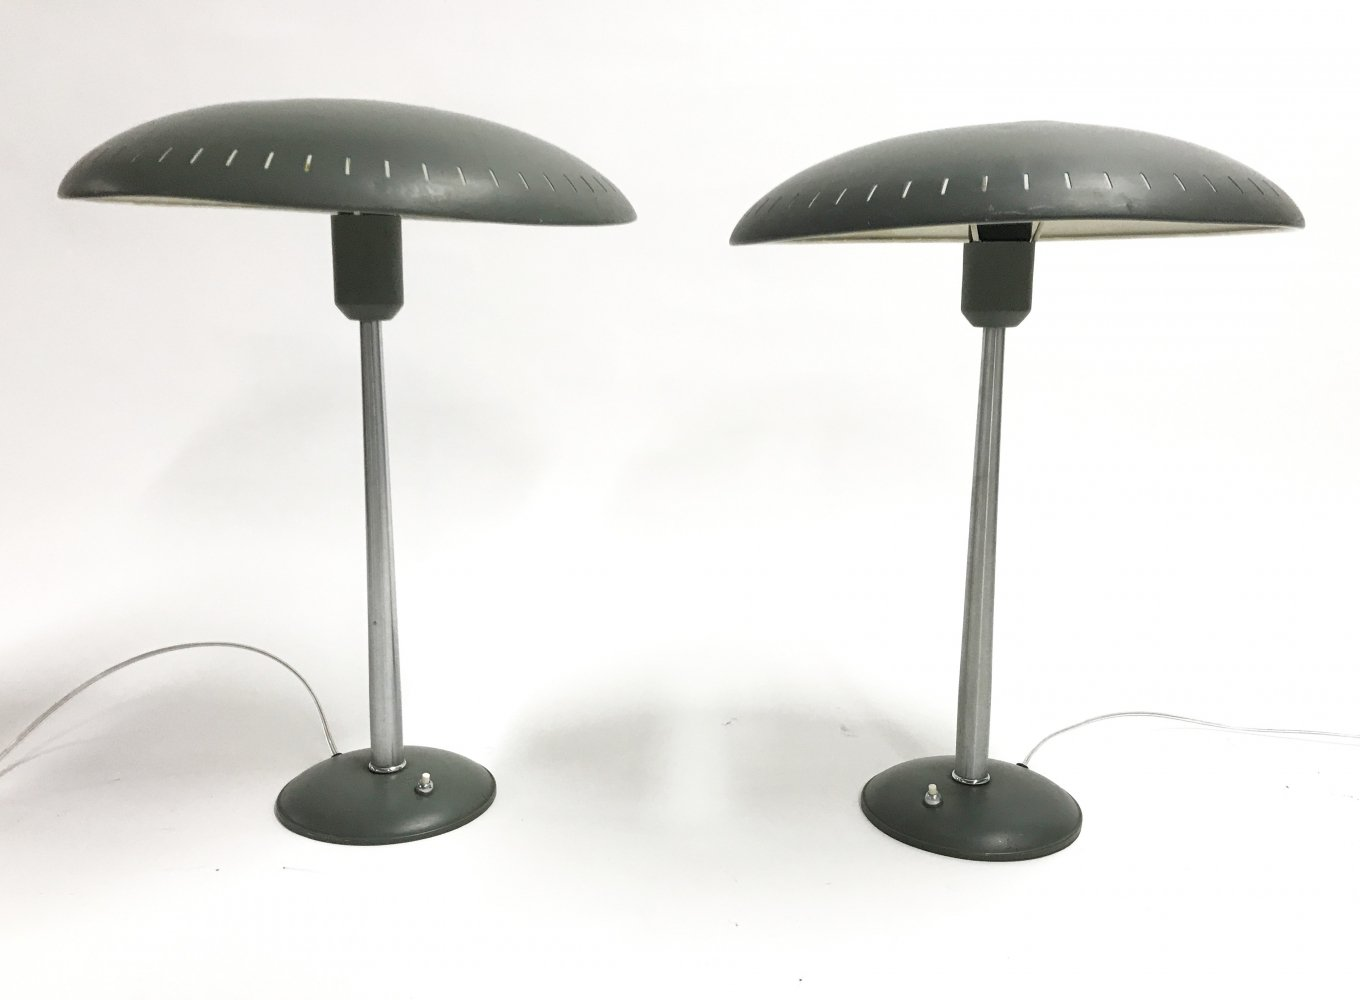 Pair of desk lamps by Louis Kalff for Philips, 1950s